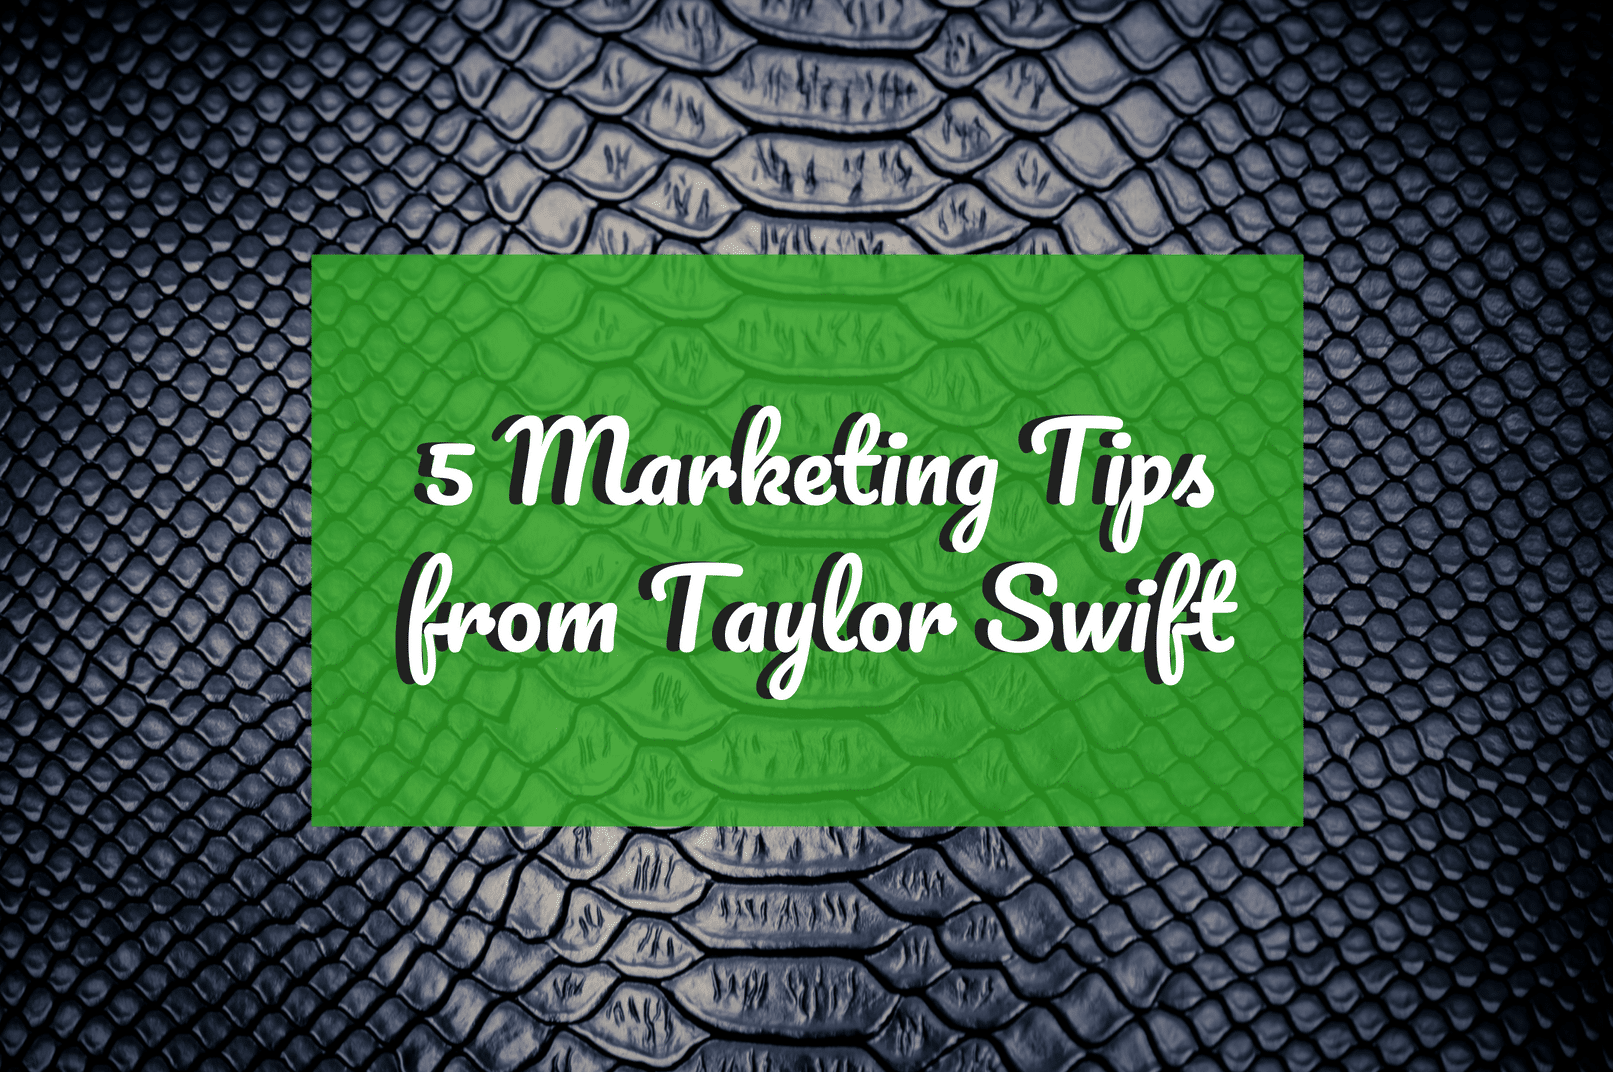 5 Marketing Tips We Can Learn from Taylor Swift